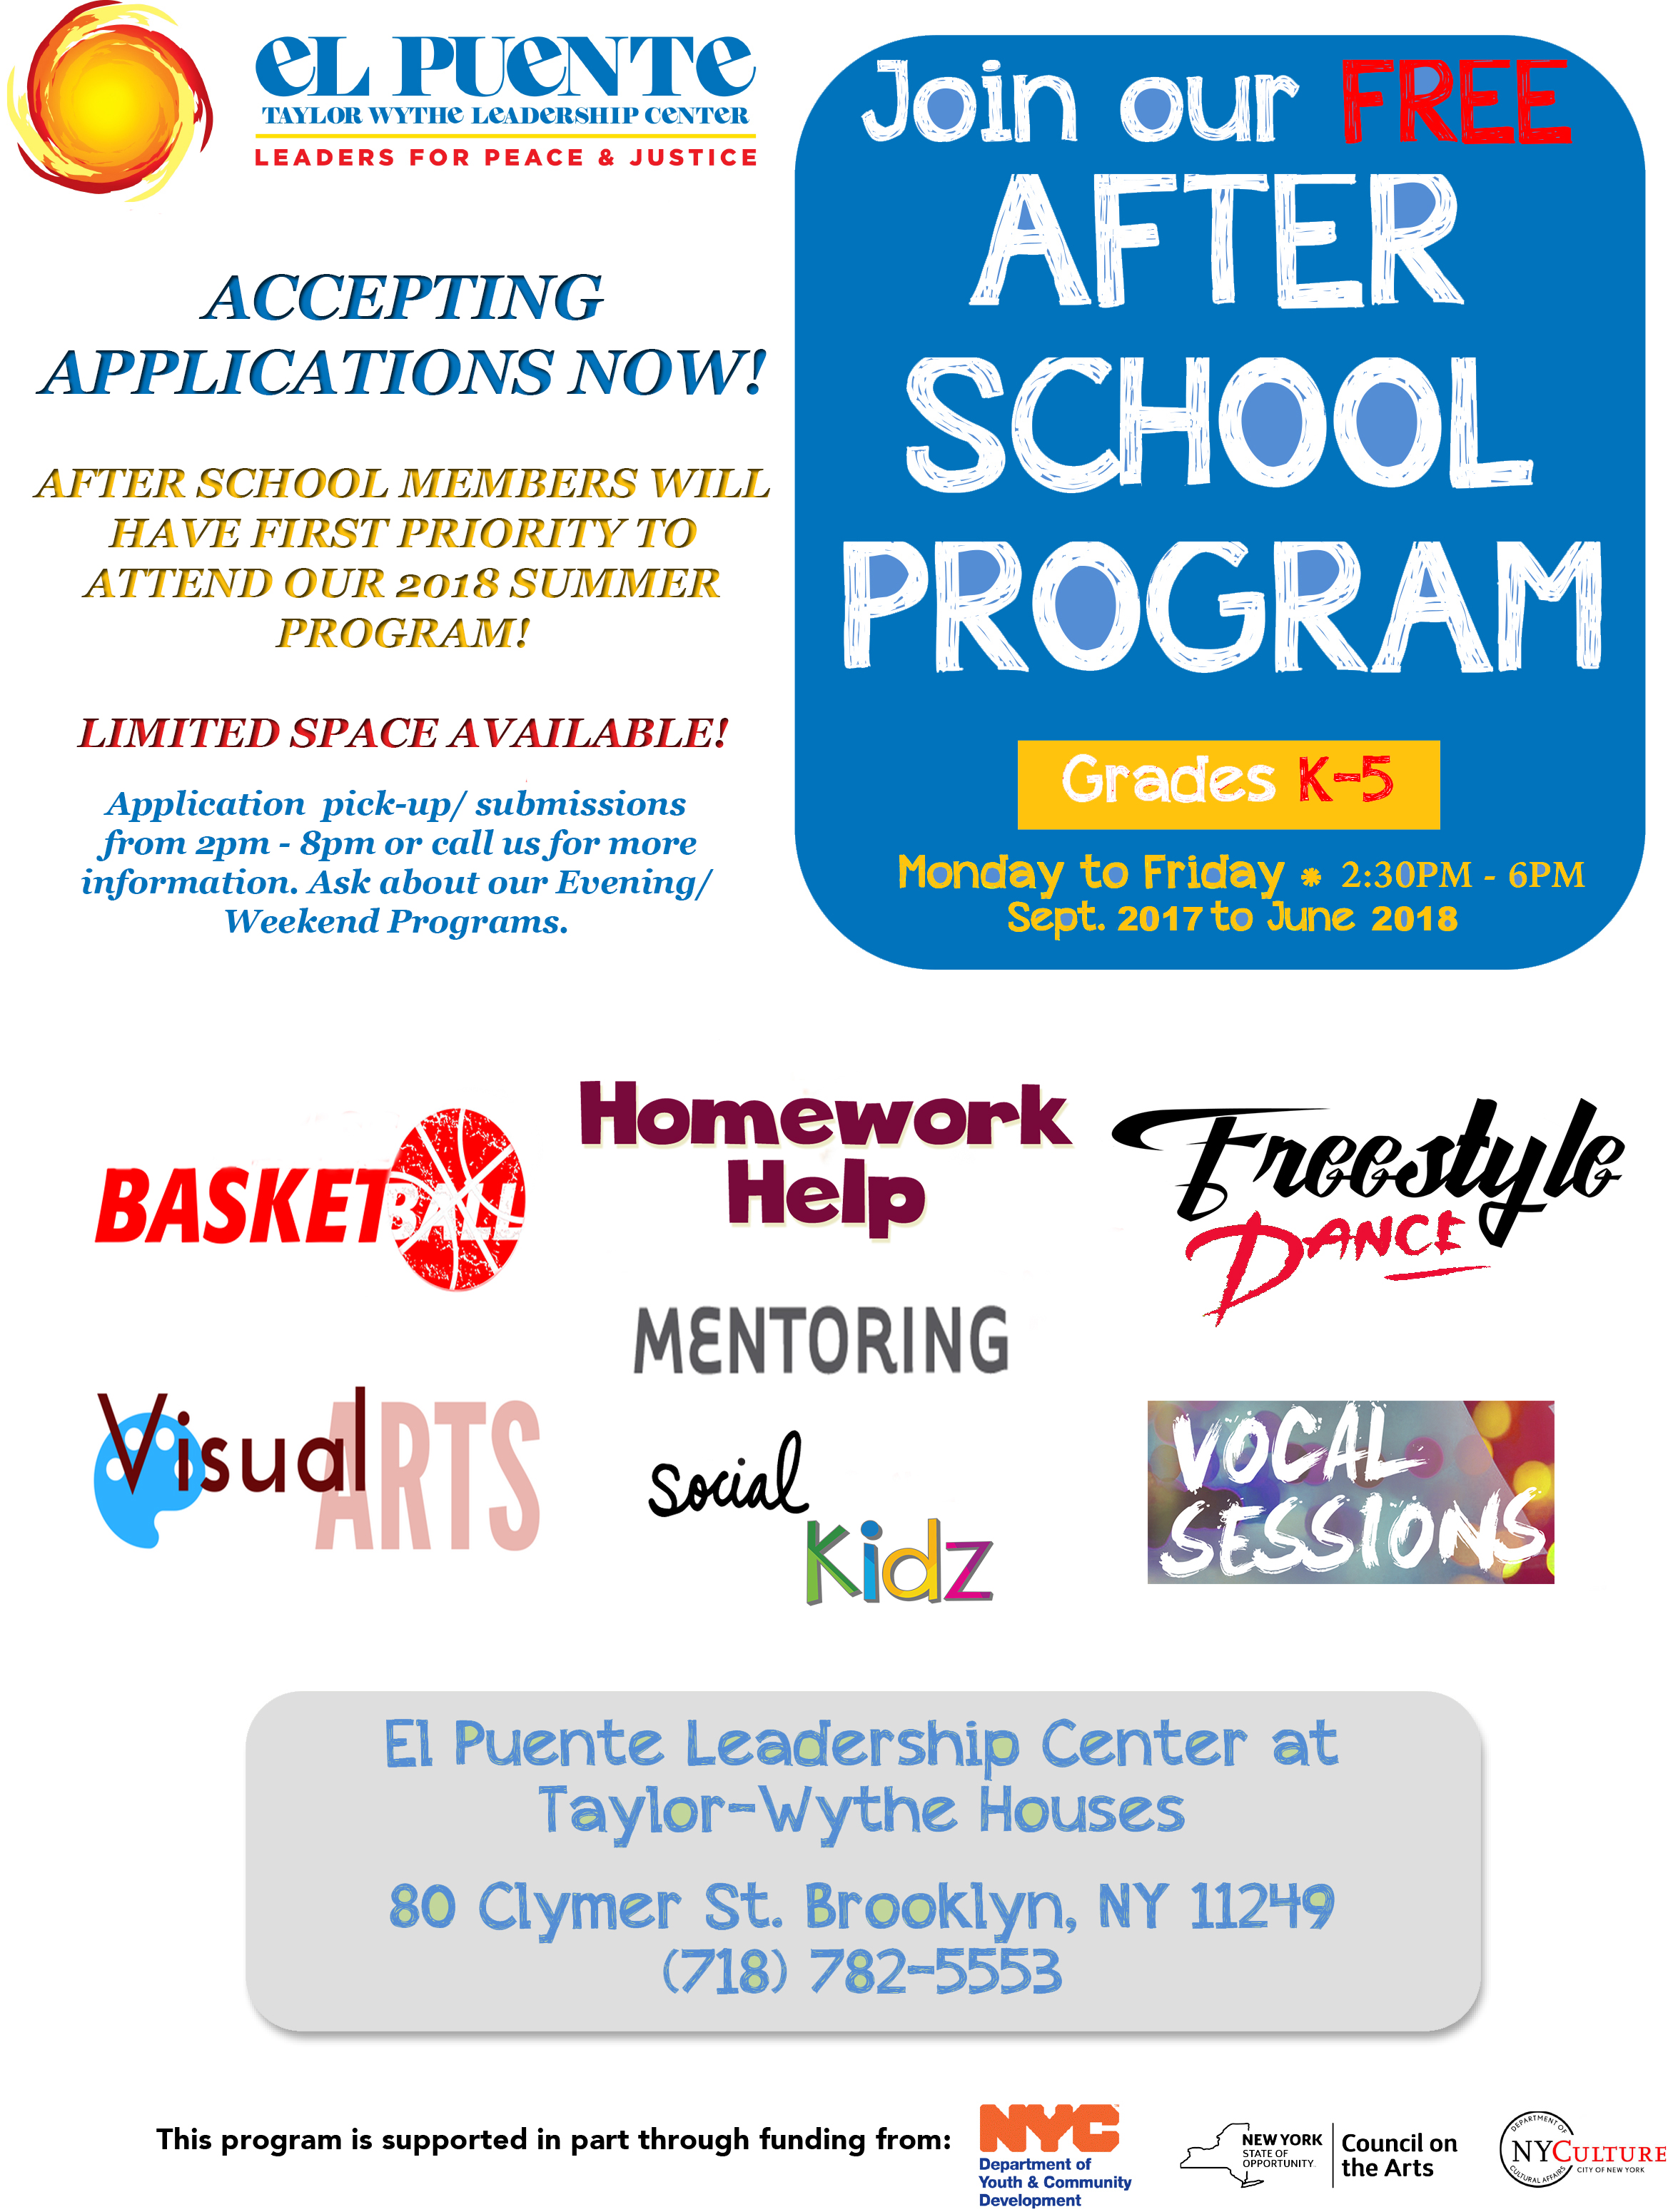 Microsoft Word - TW Fall 2016 Elem Recruitment Flier-1